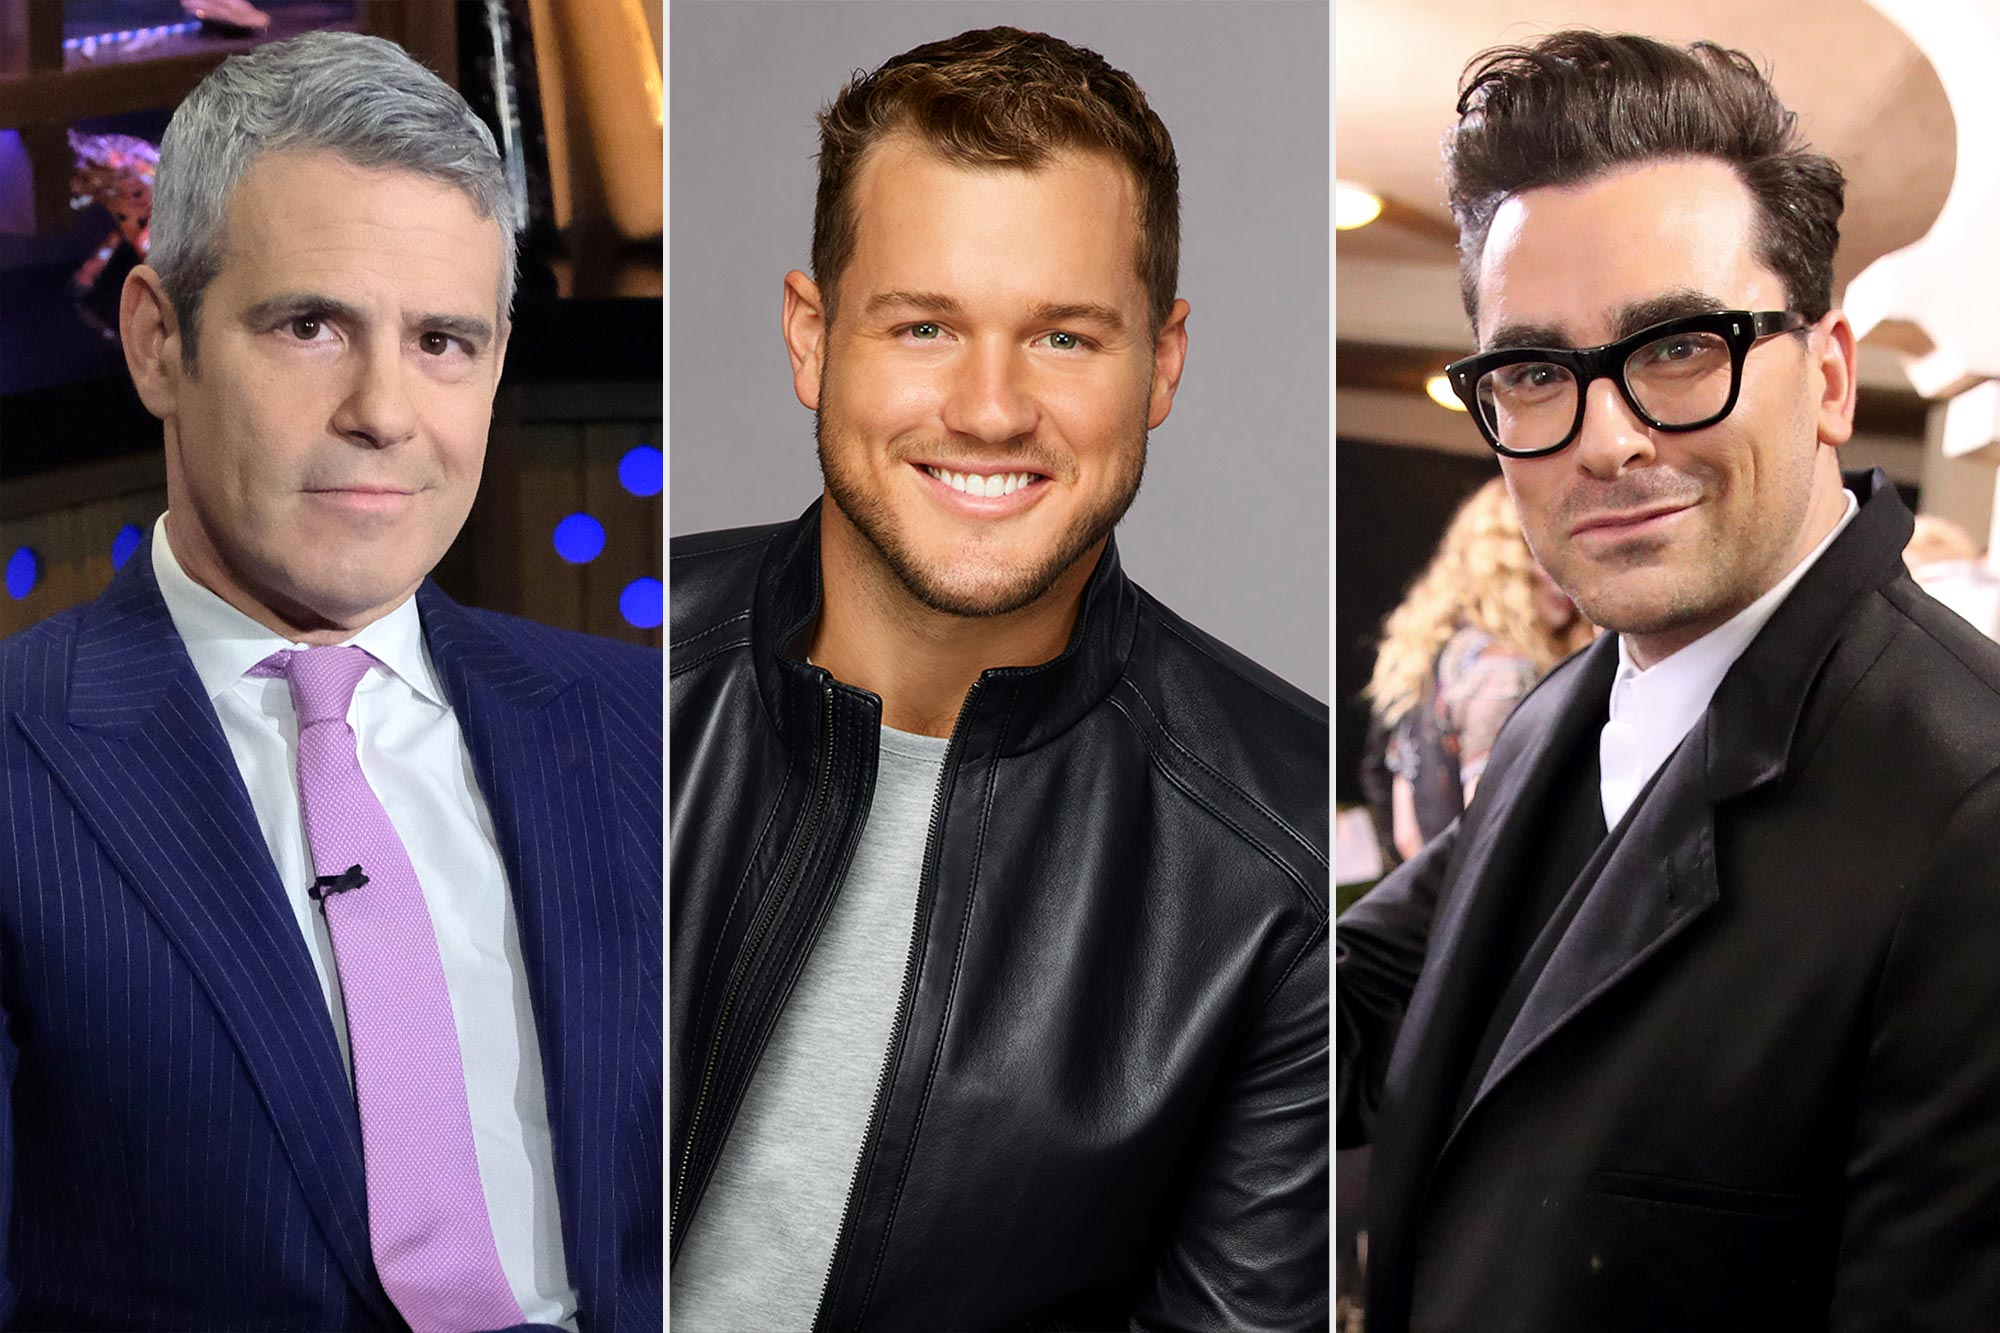 Andy Cohen, Colton Underwood & Dan Levy